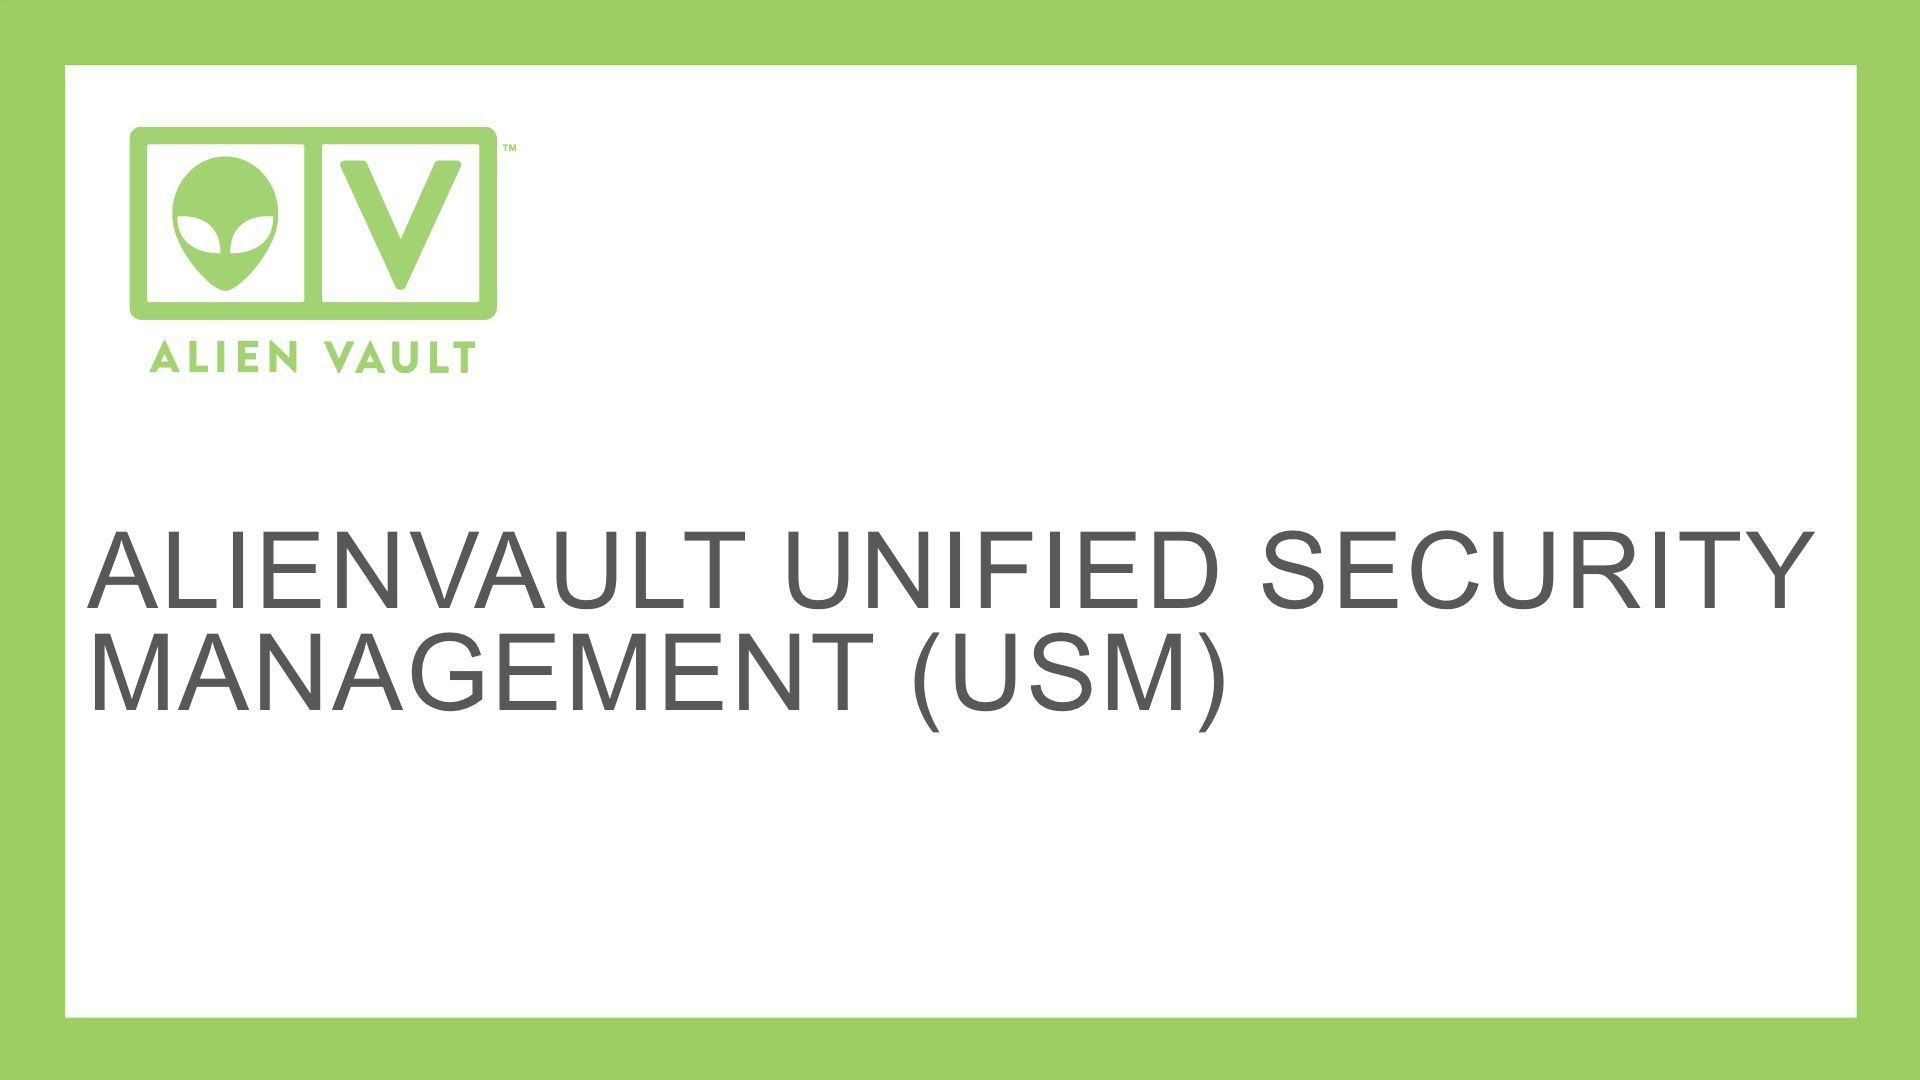 AlienVault Unified Security Management USM CyberSecurity 1920x1080